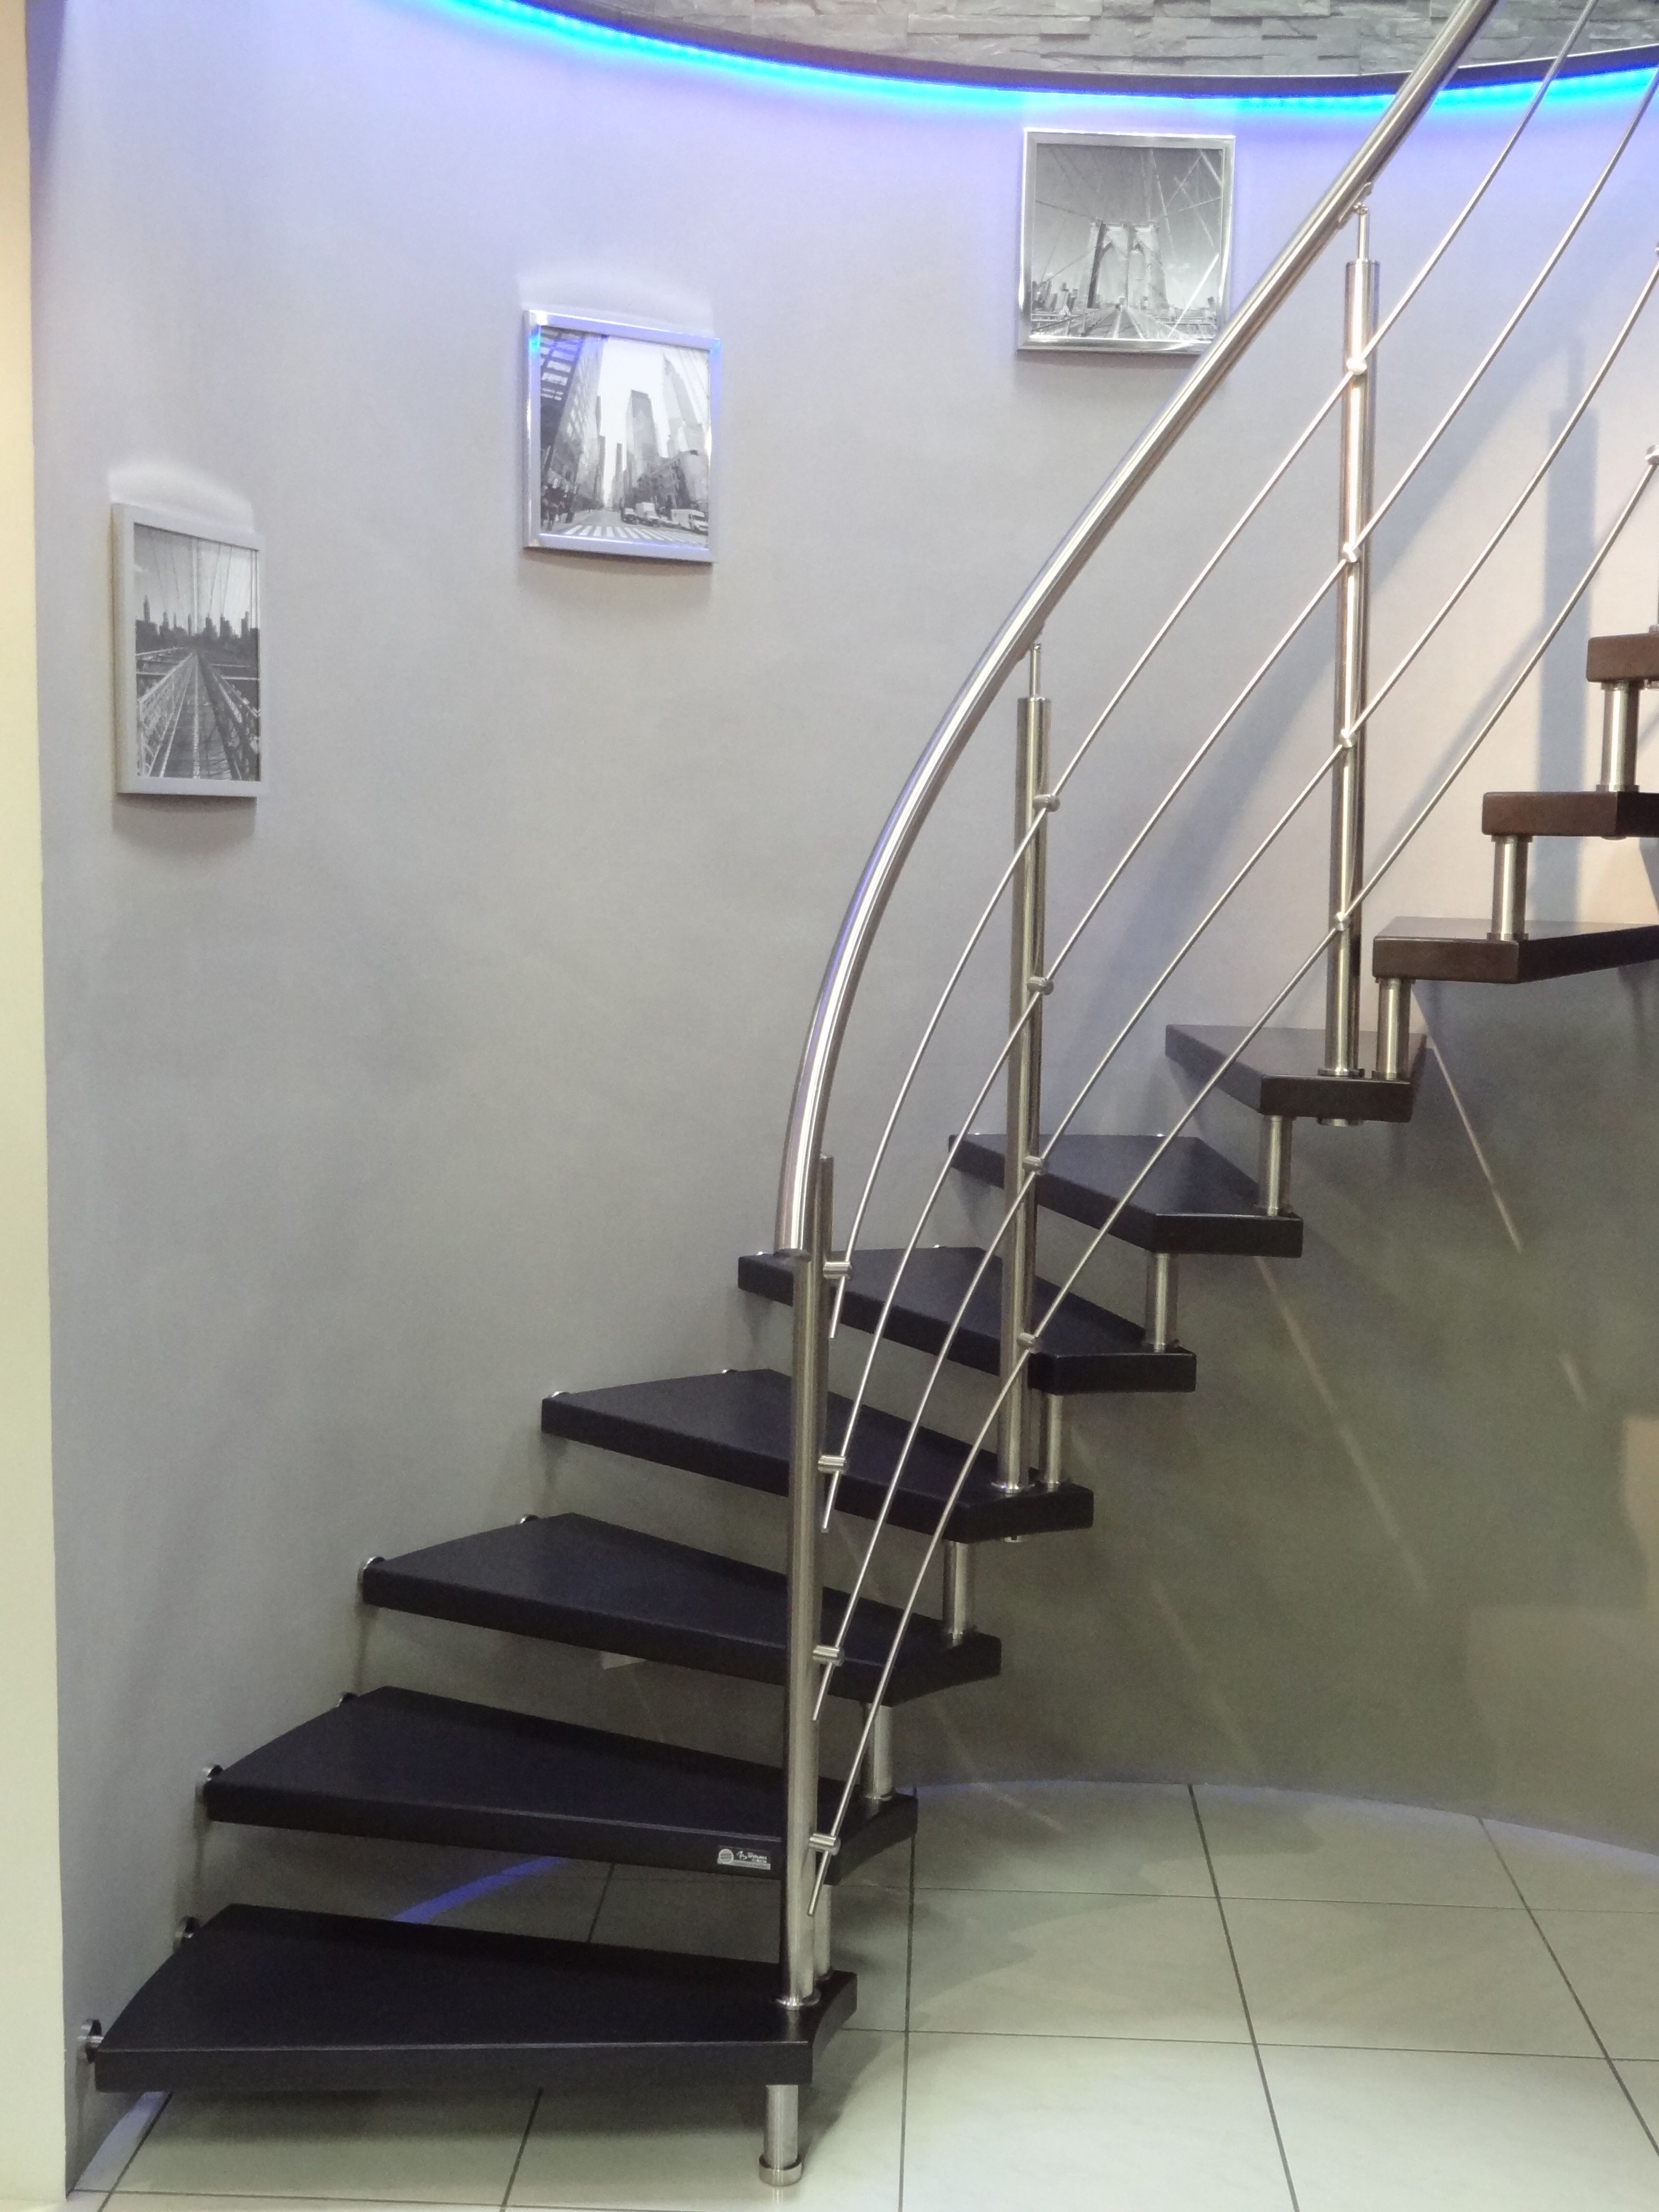 Escalier int rieur design sans contre marche main for Escalier interieur